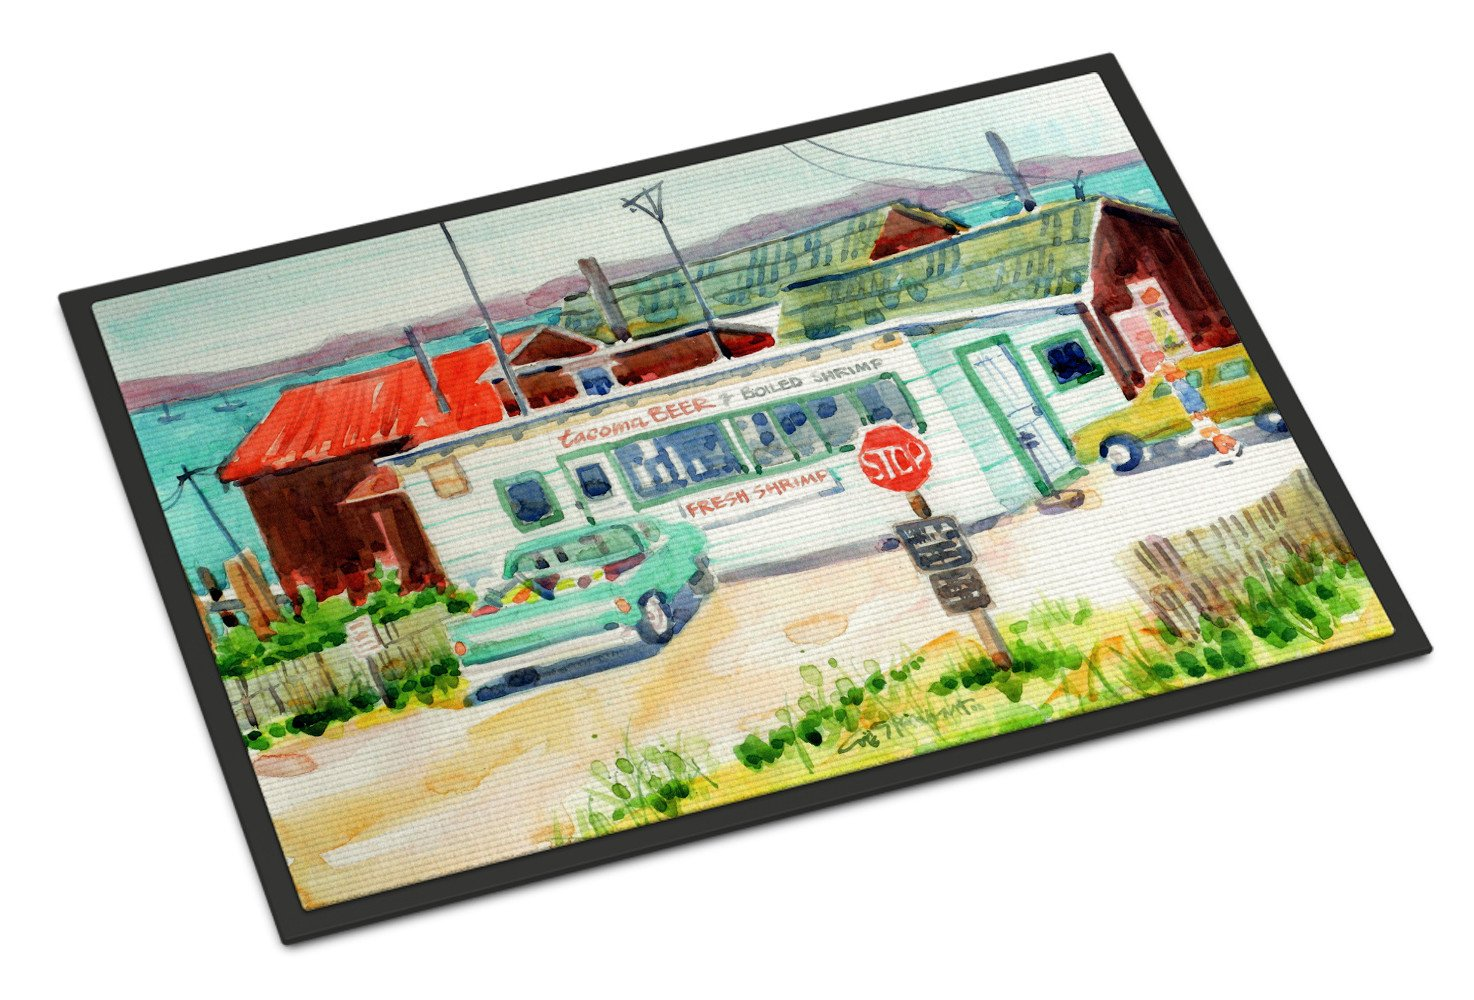 Tacoma Beer and Boiled Shrimp Market Indoor or Outdoor Mat 18x27 6141MAT - the-store.com